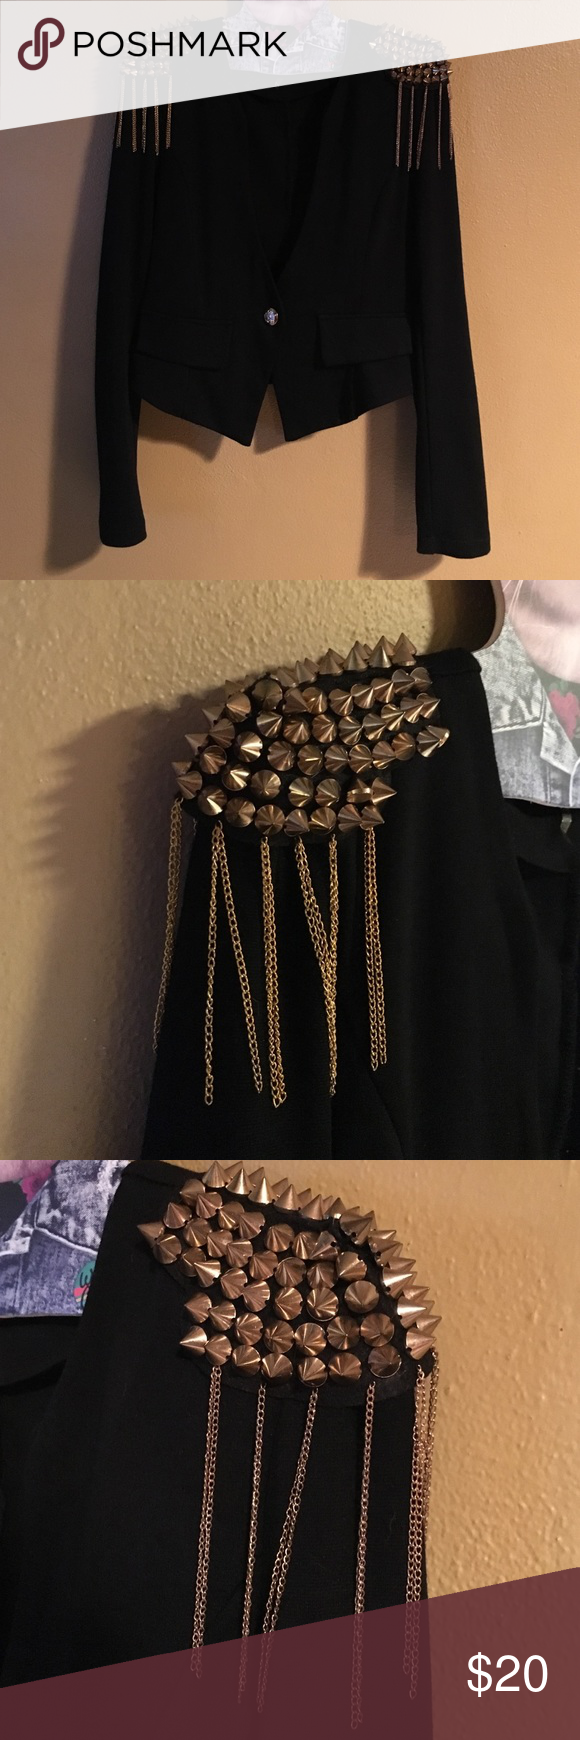 Black studded blazer Black blazer with gold spiked shoulders. Worn a handful of times. No spikes are missing. Great condition. Size small. XTaren Jackets & Coats Blazers